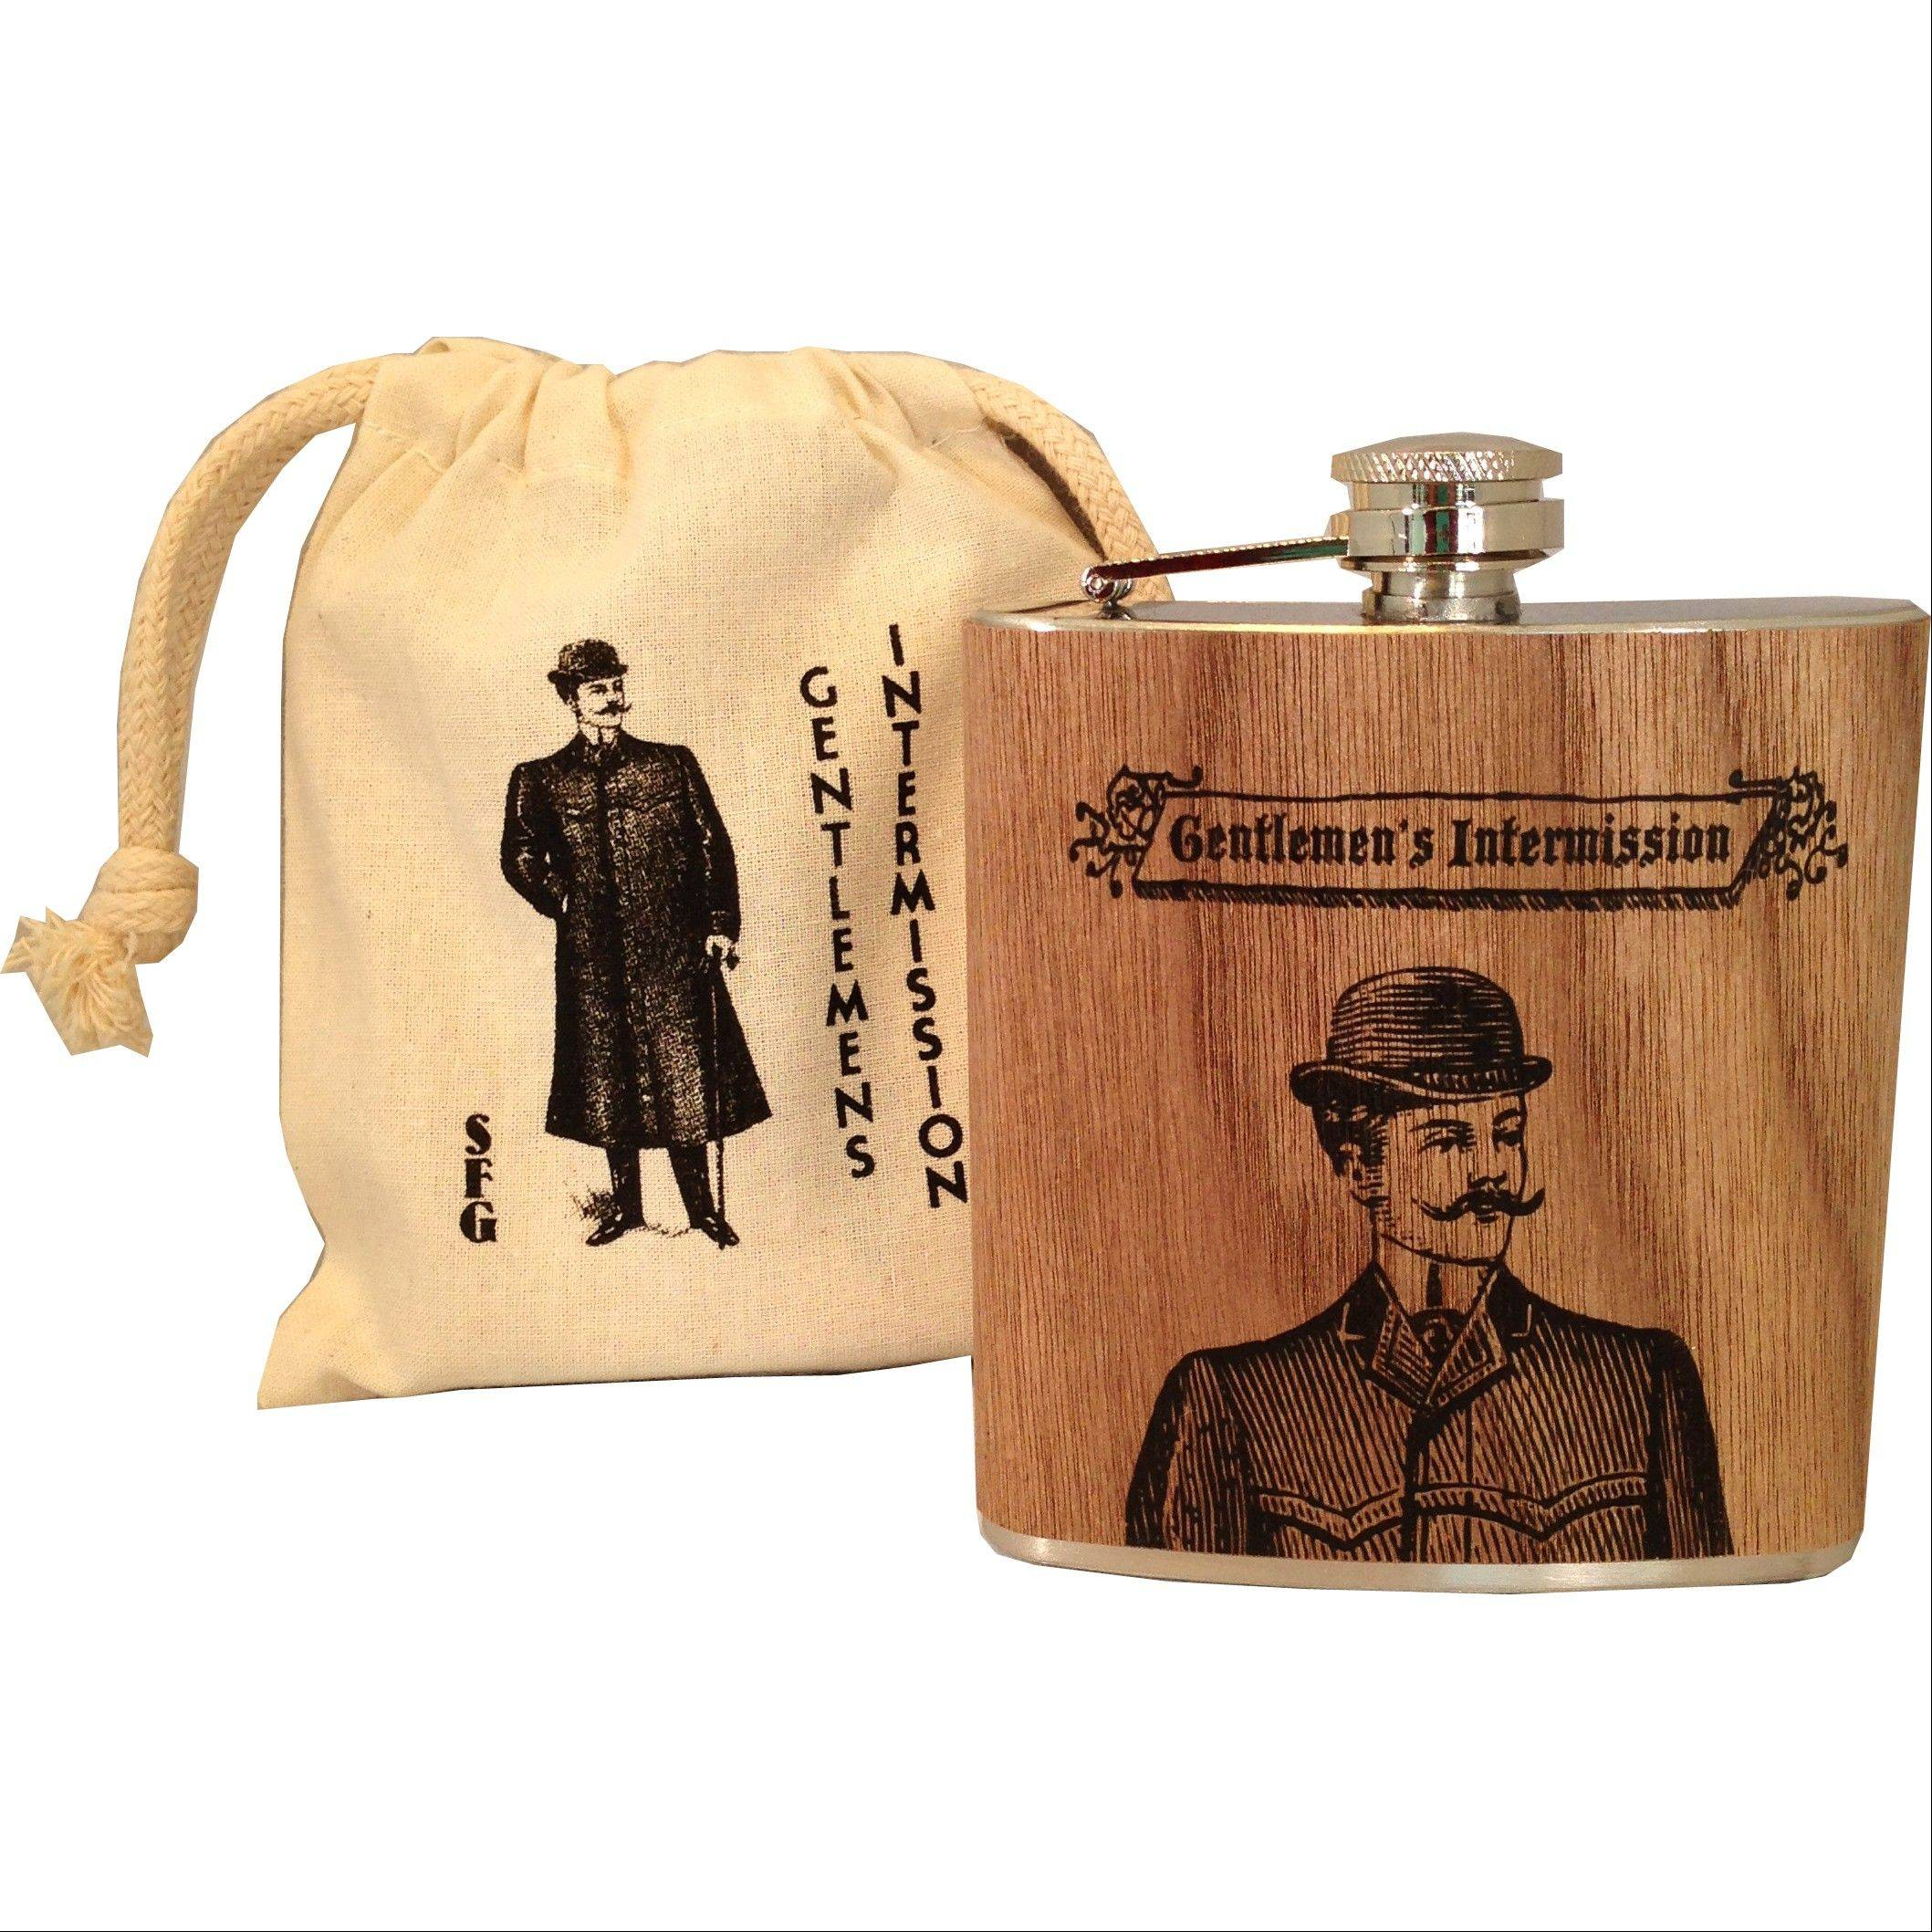 Flasks printed with vintage drawings of dapper gentlemen give old-school charm to a collection of flasks and other barware.